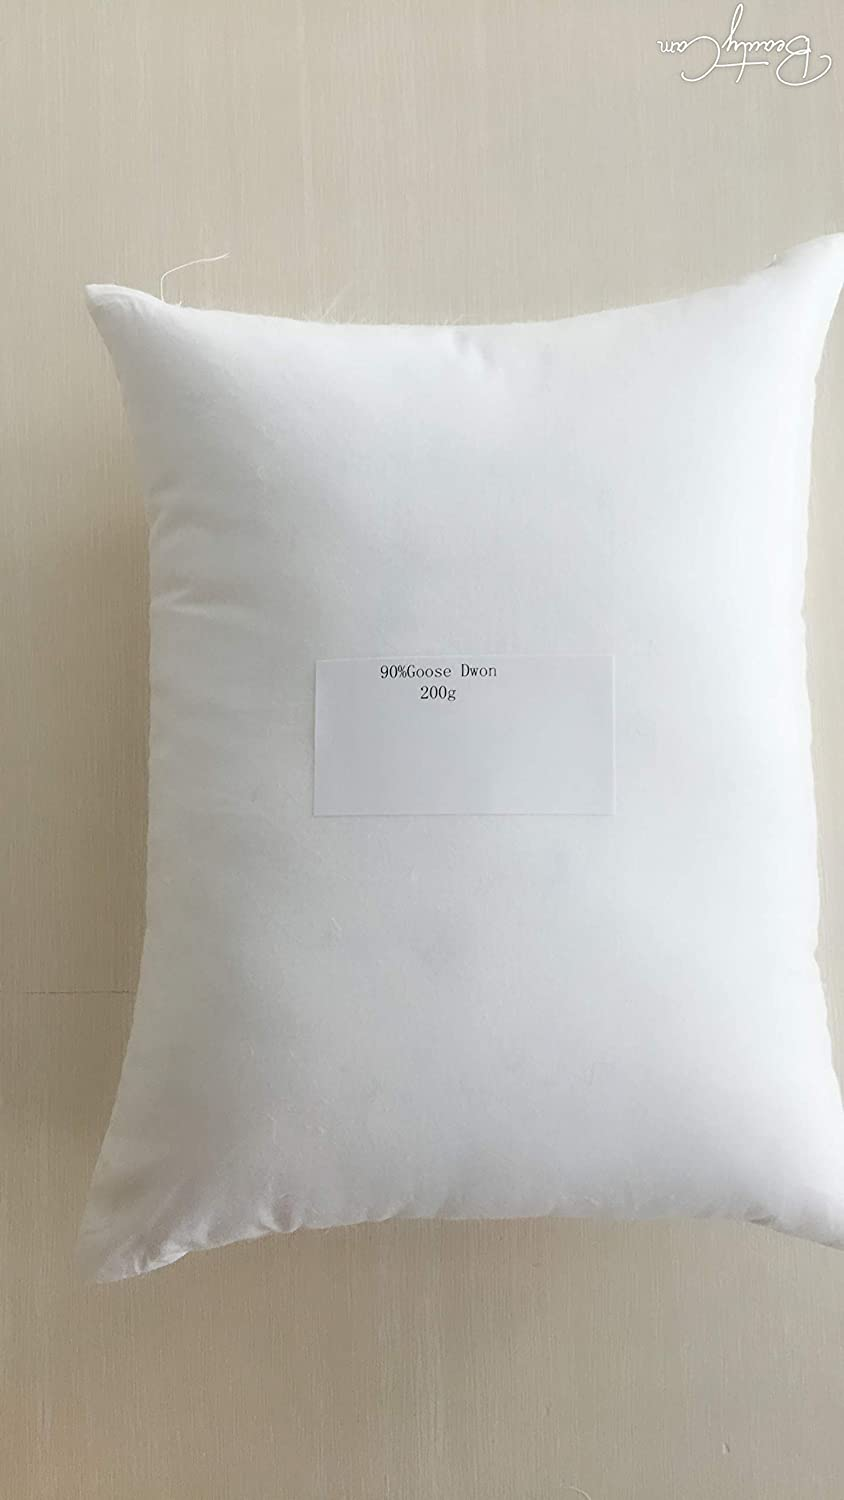 Bulk Goose Down Filling(7once), 100% Natural White Down-DIY, Make Your own Pillow, Comforter, Toy, Jacket, Sofa-Sample February Snow